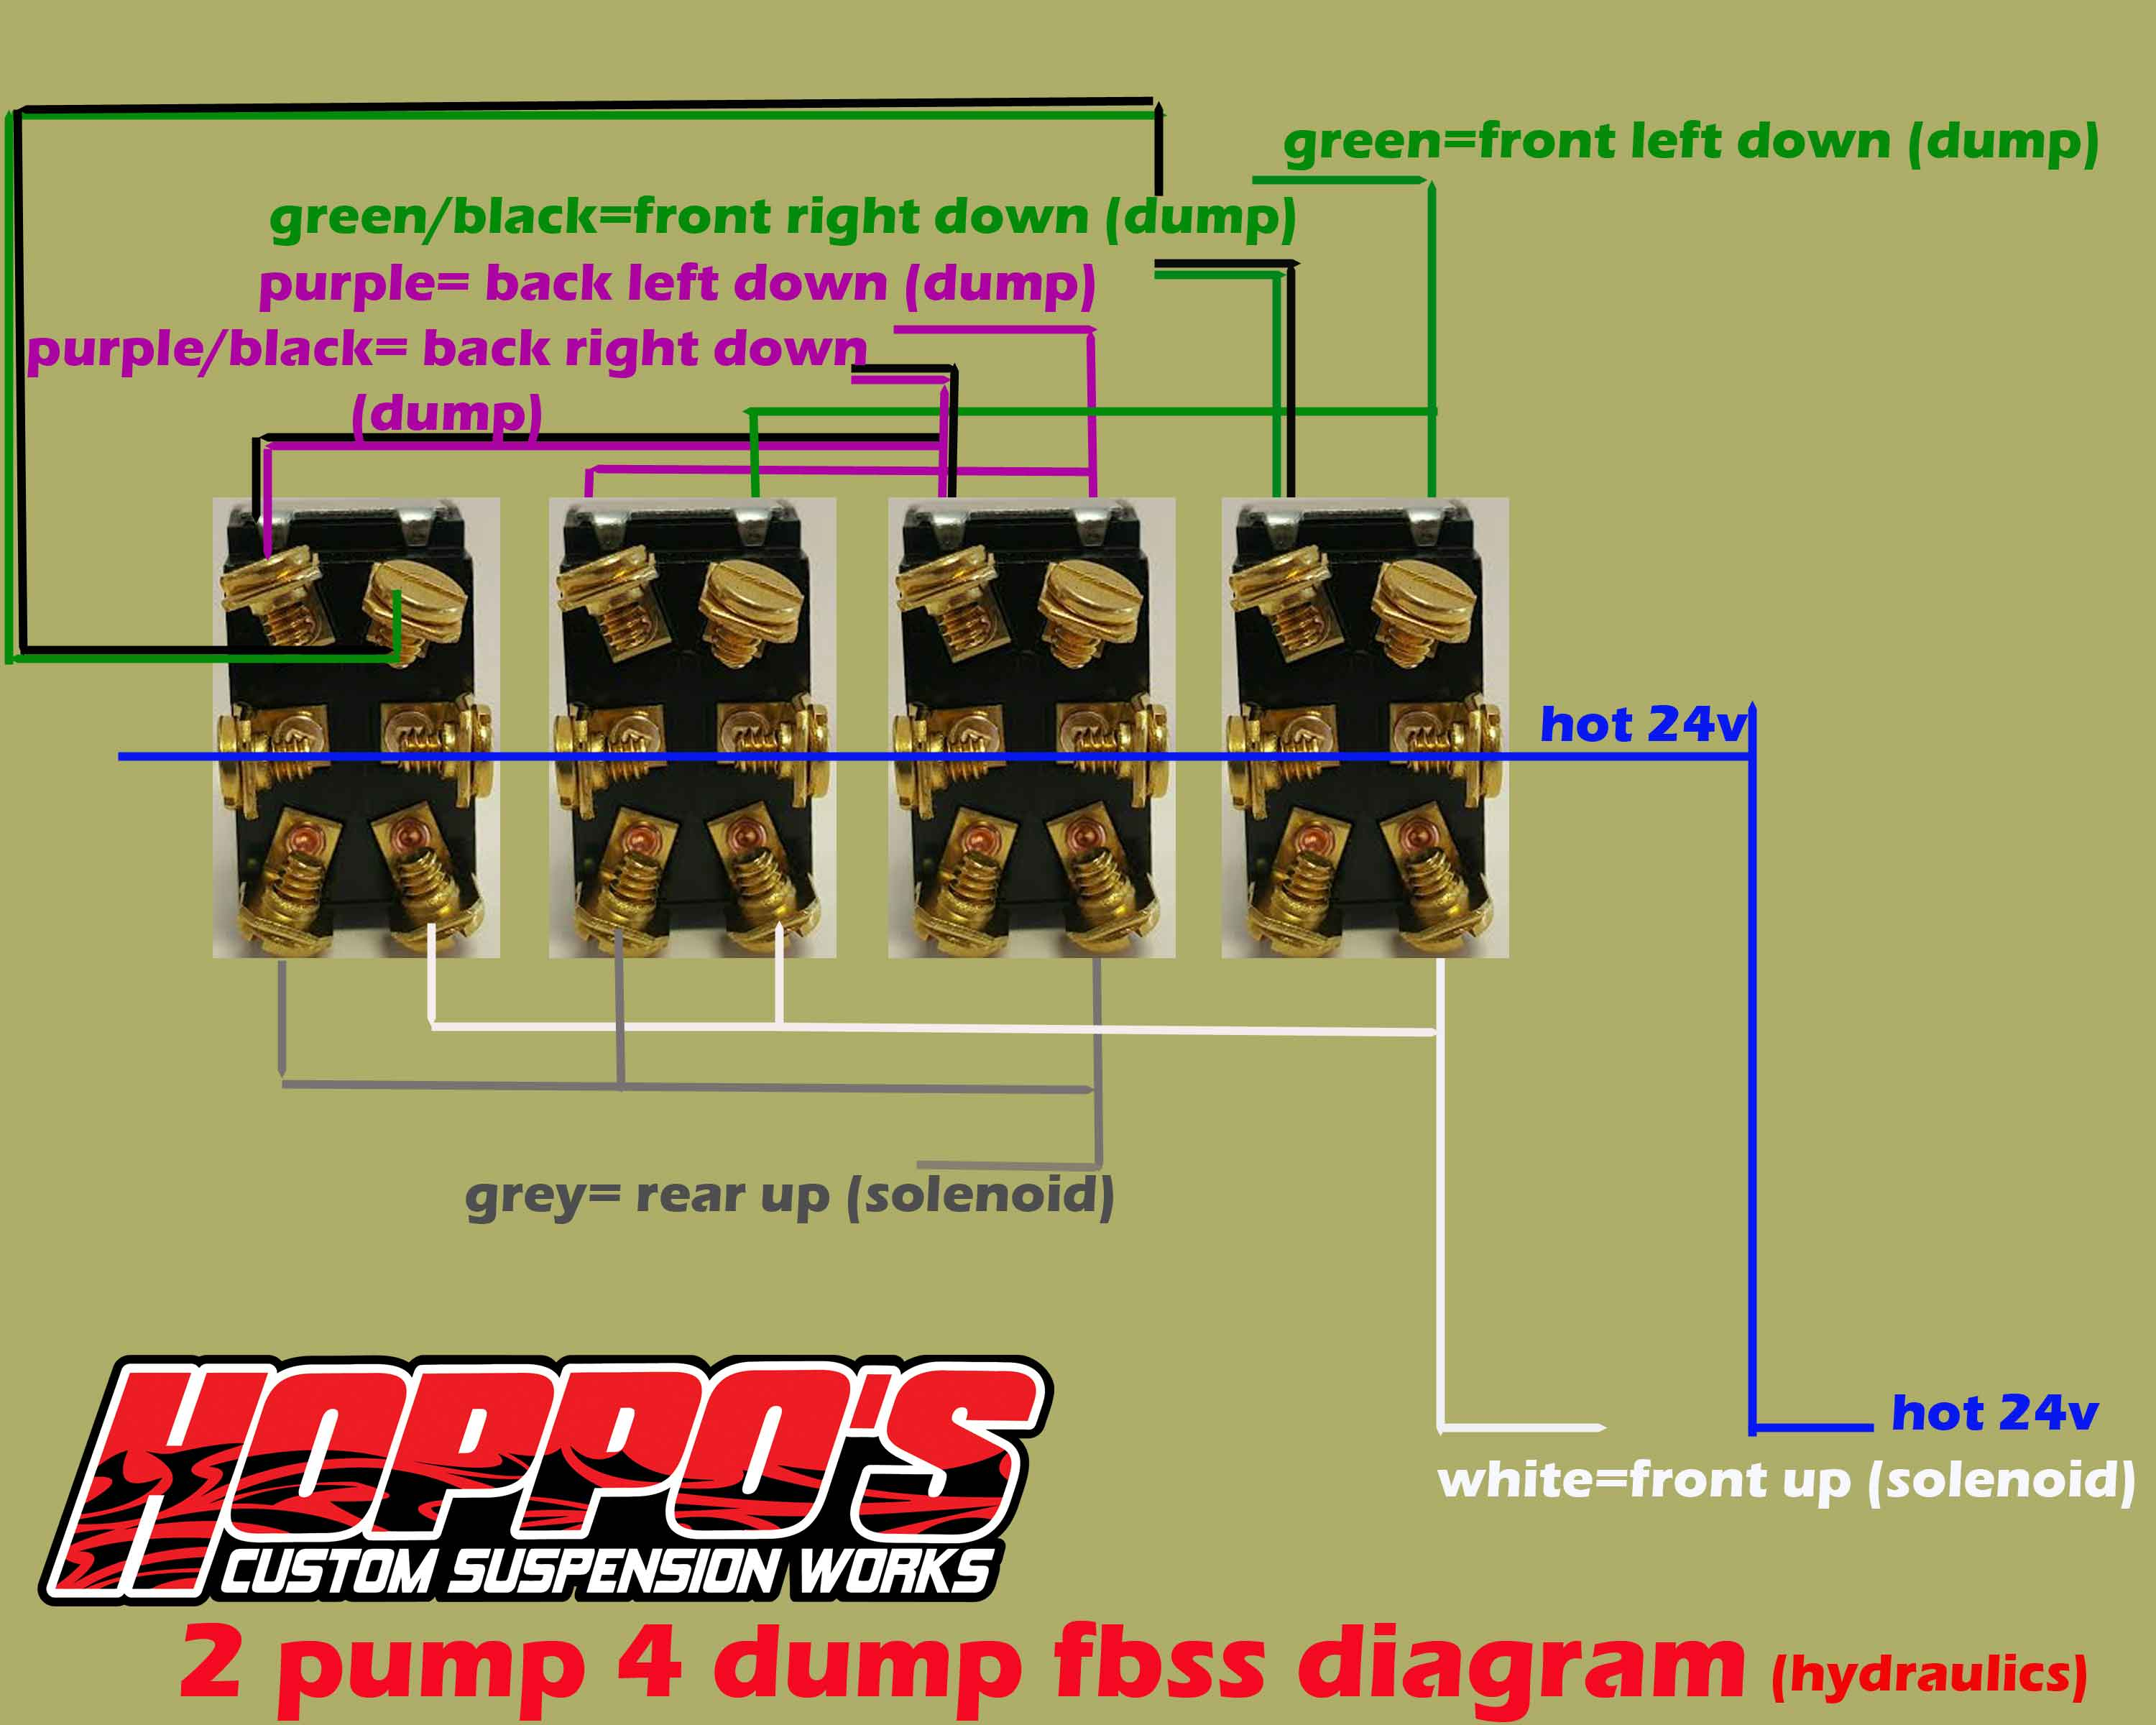 2 Hydraulic Pump Wiring Diagram - Wiring Diagram Blog - Dump Trailer on hydraulic system diagram, auto crane parts diagram, basic hydraulic schematic diagram, wireless hydraulic diagram, 12v hydraulic pump wiring diagram, hydraulic crane parts diagram, daewoo 220 s hydralic diagram,